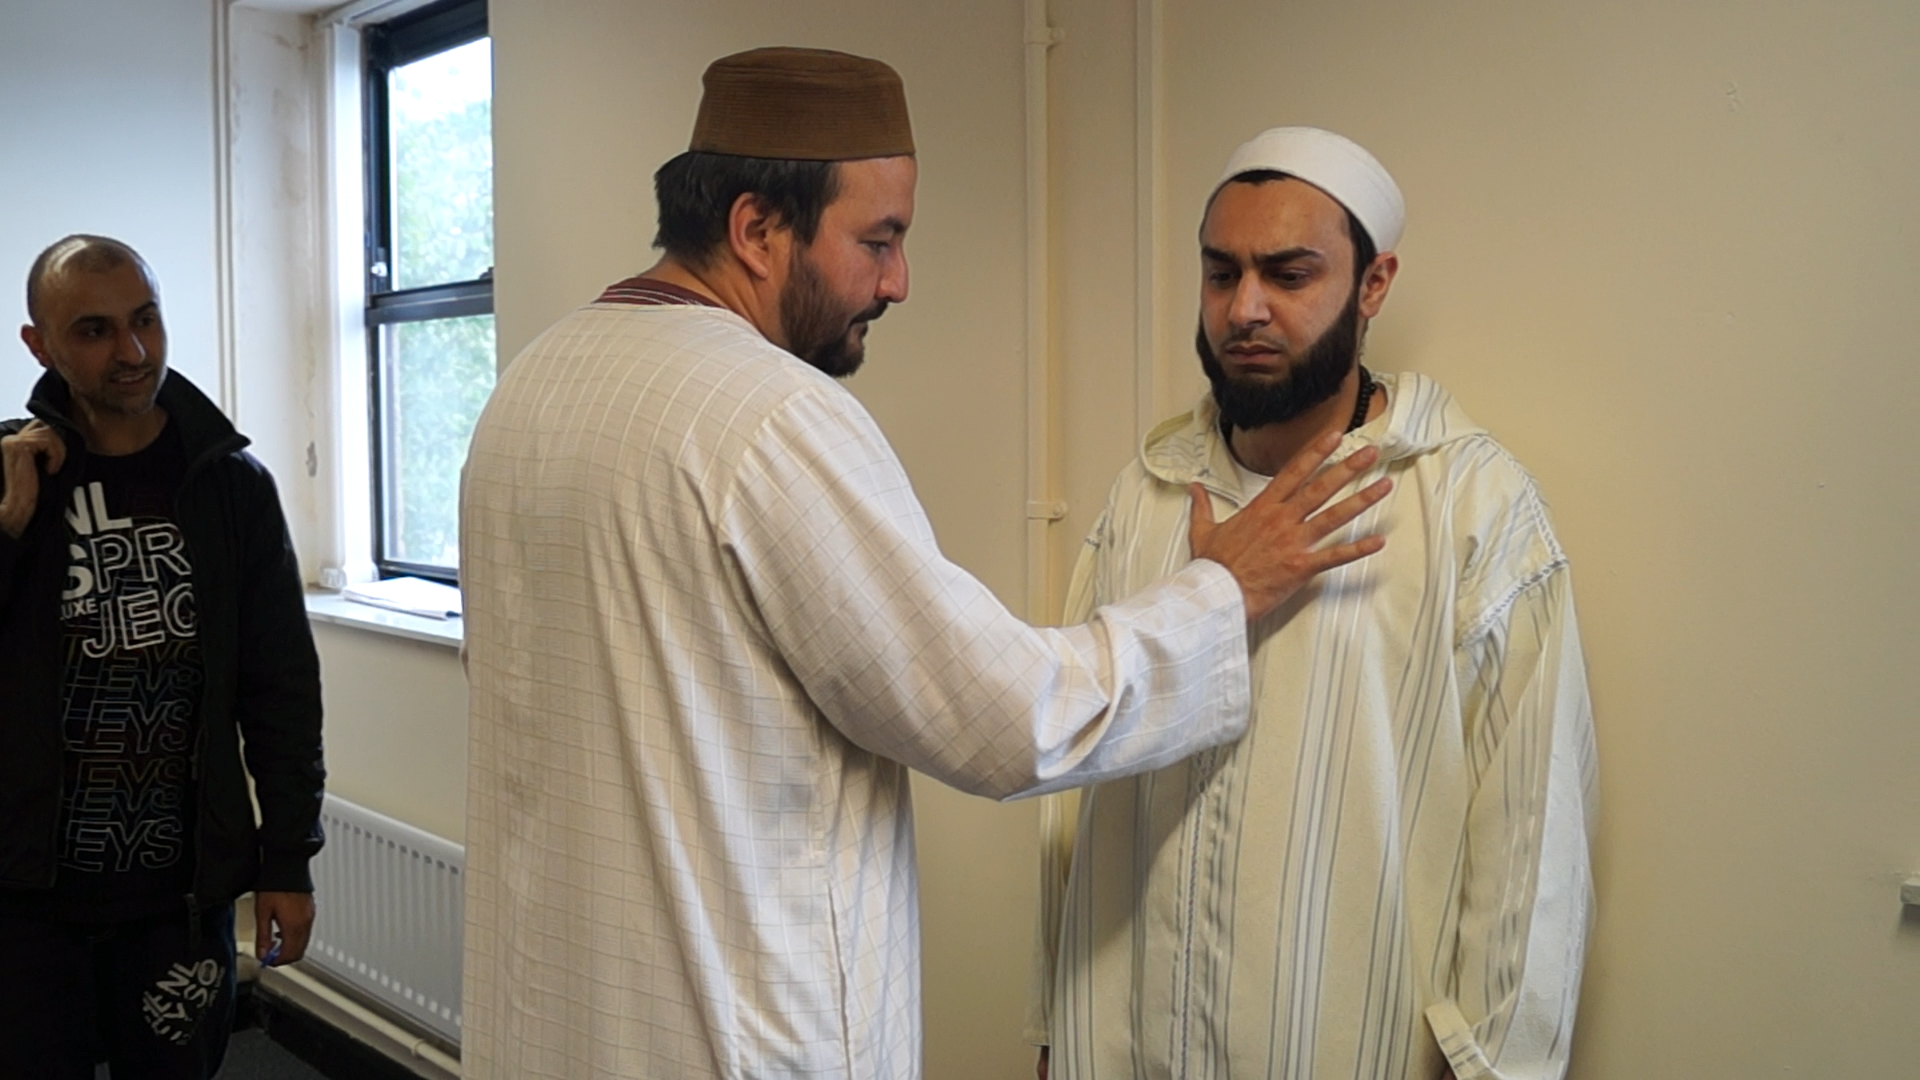 Shaykh Treating